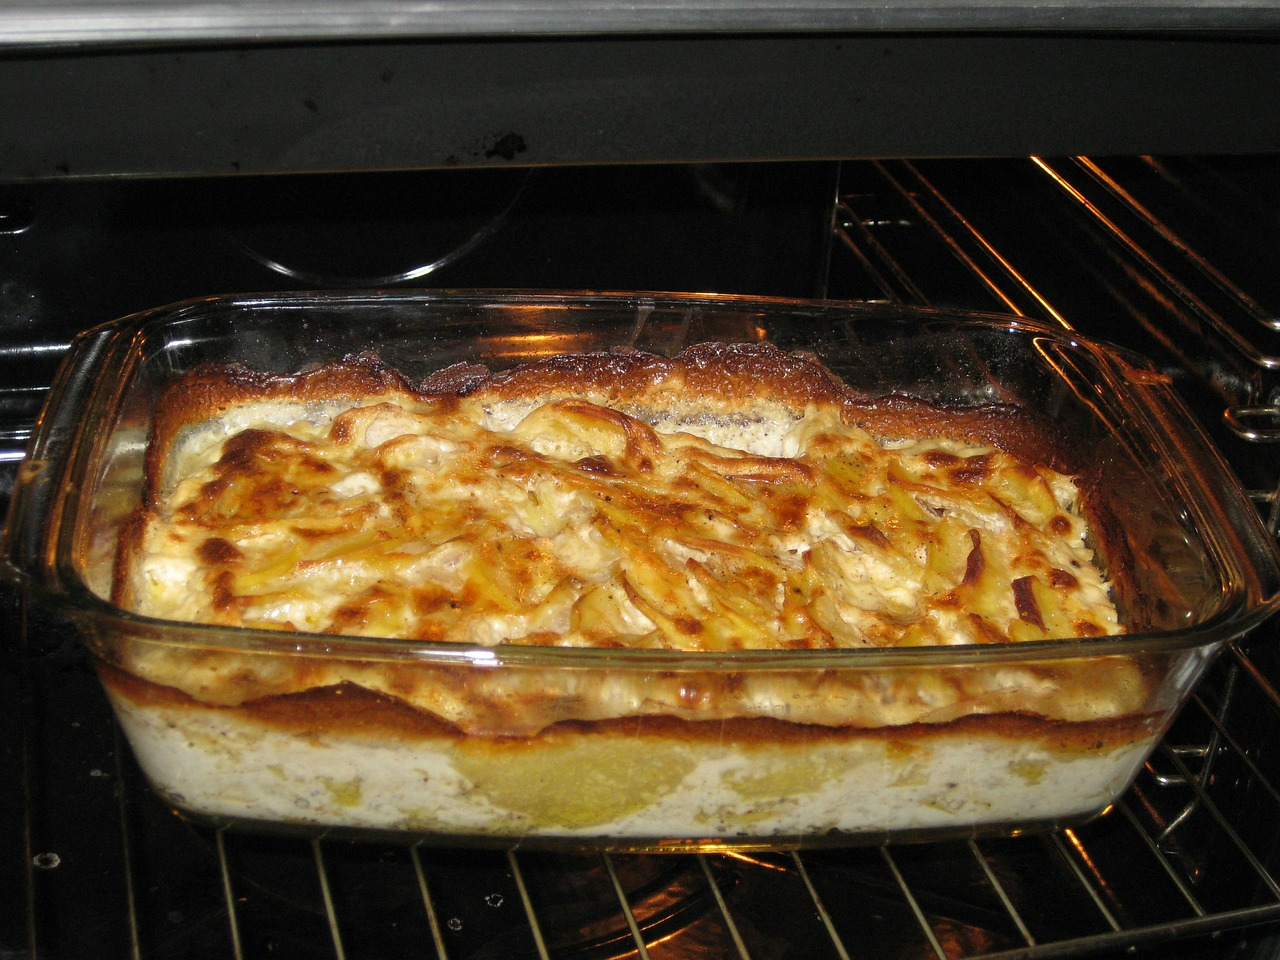 potato gratin eat oven free photo